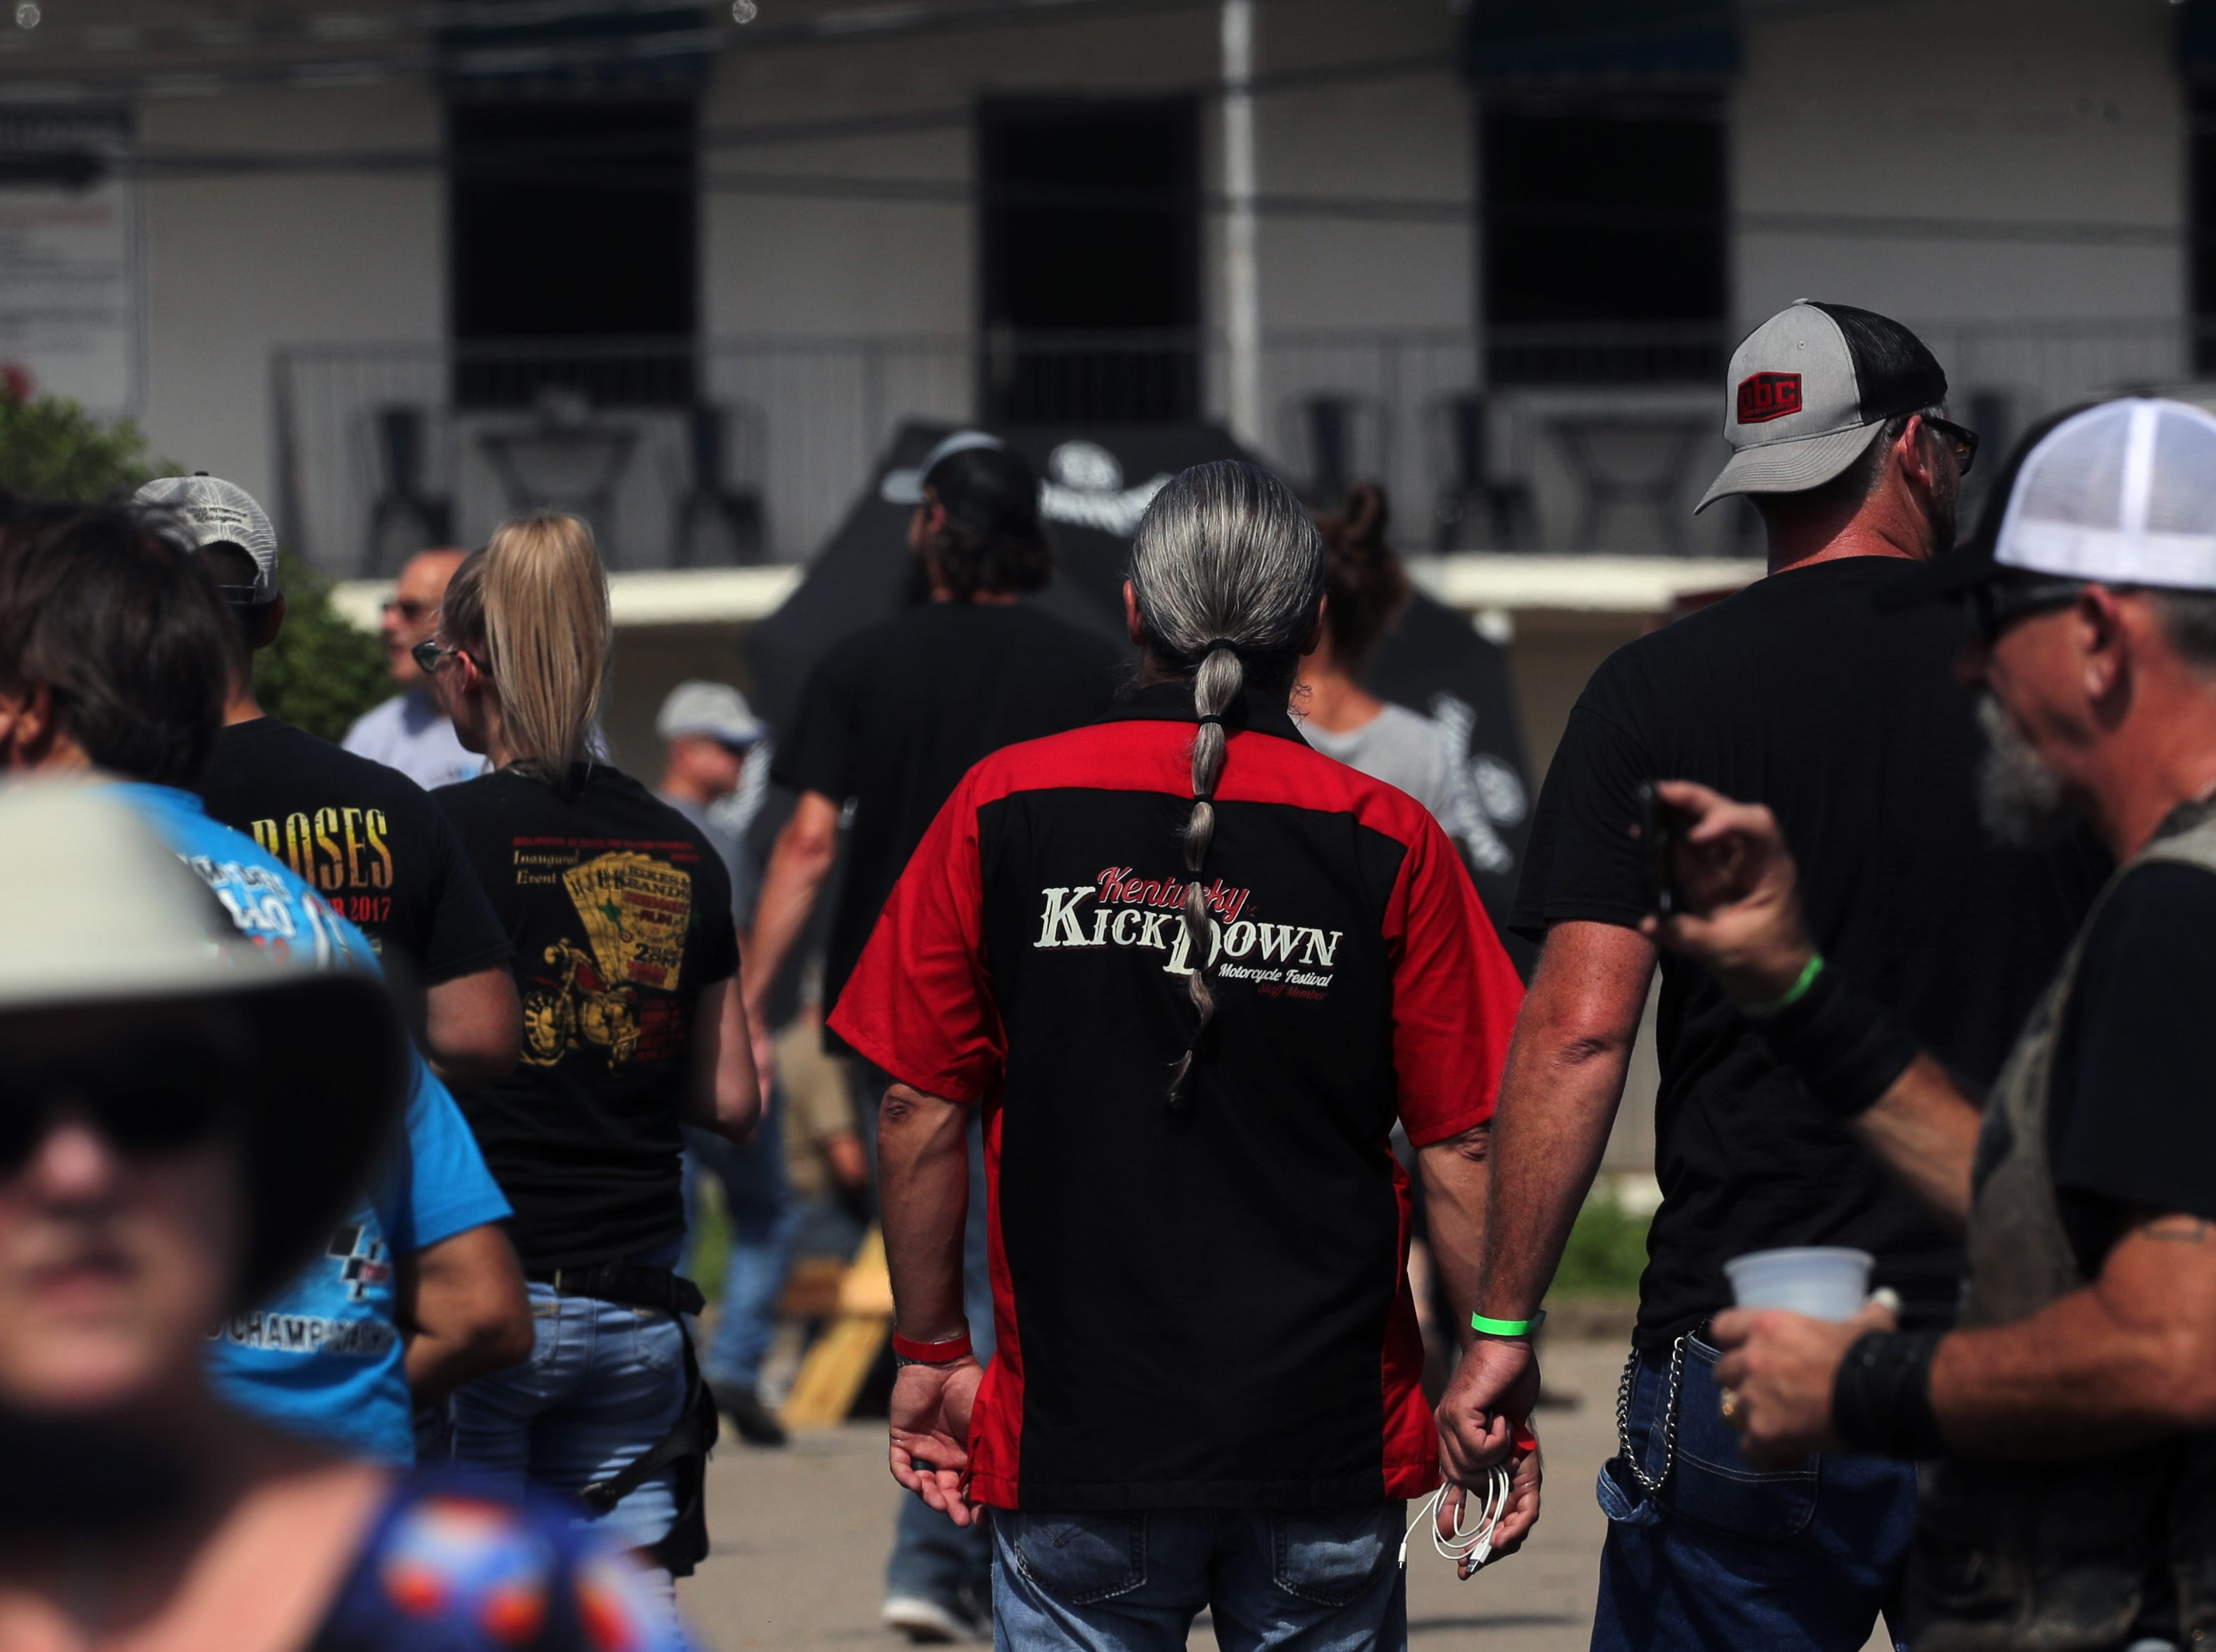 Scenes from the Kentucky Kick Down Festival.  